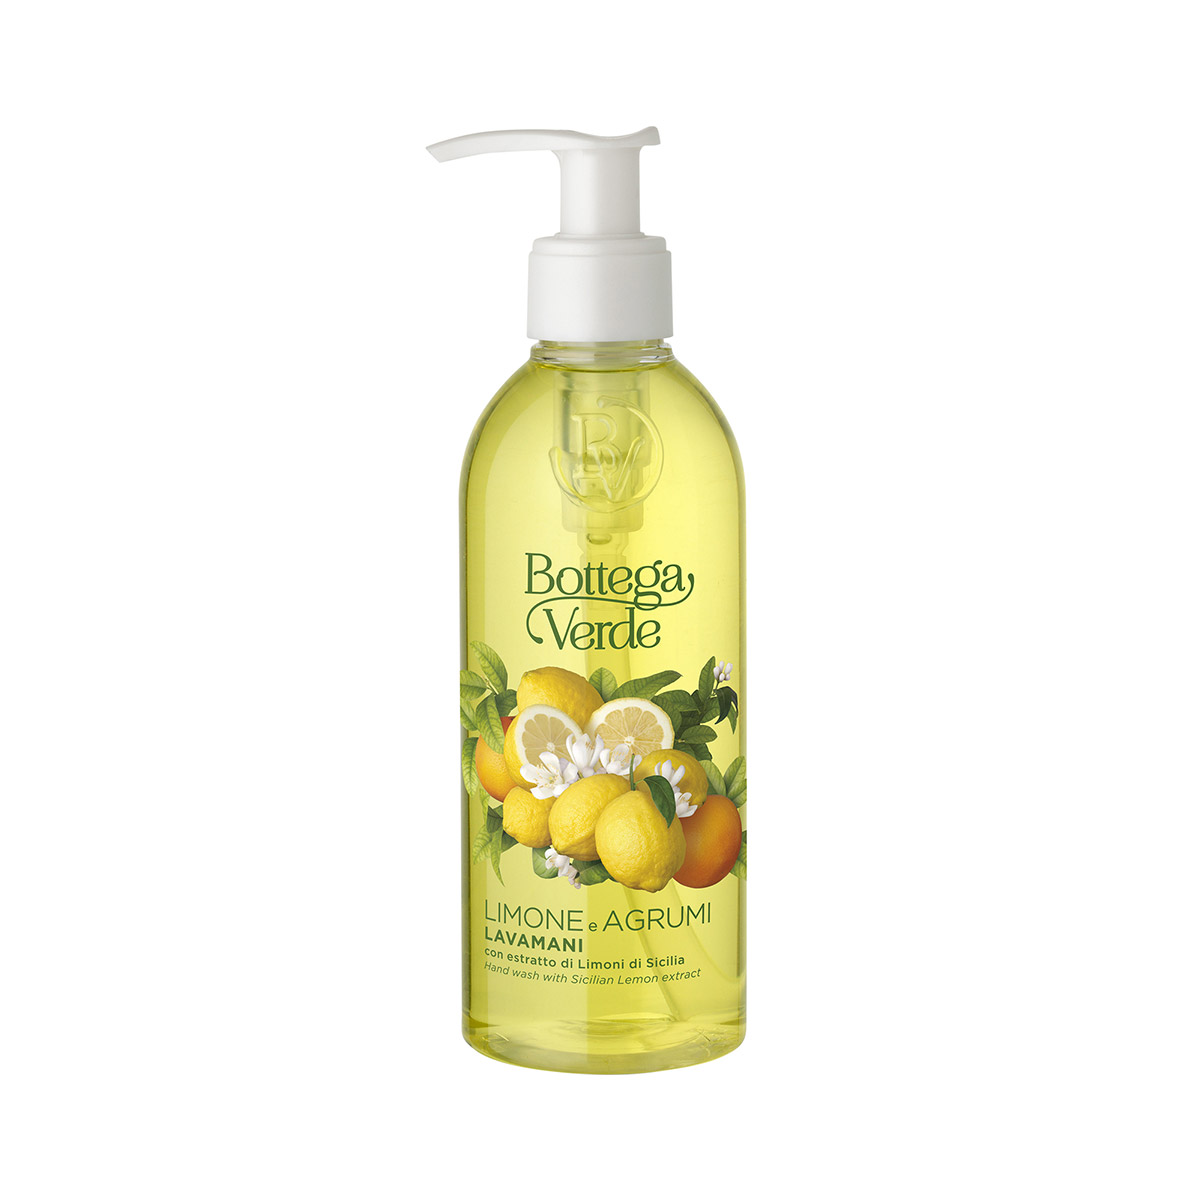 Limone e Agrumi - Hand Wash with Sicilian Lemon Extract (250 ml)